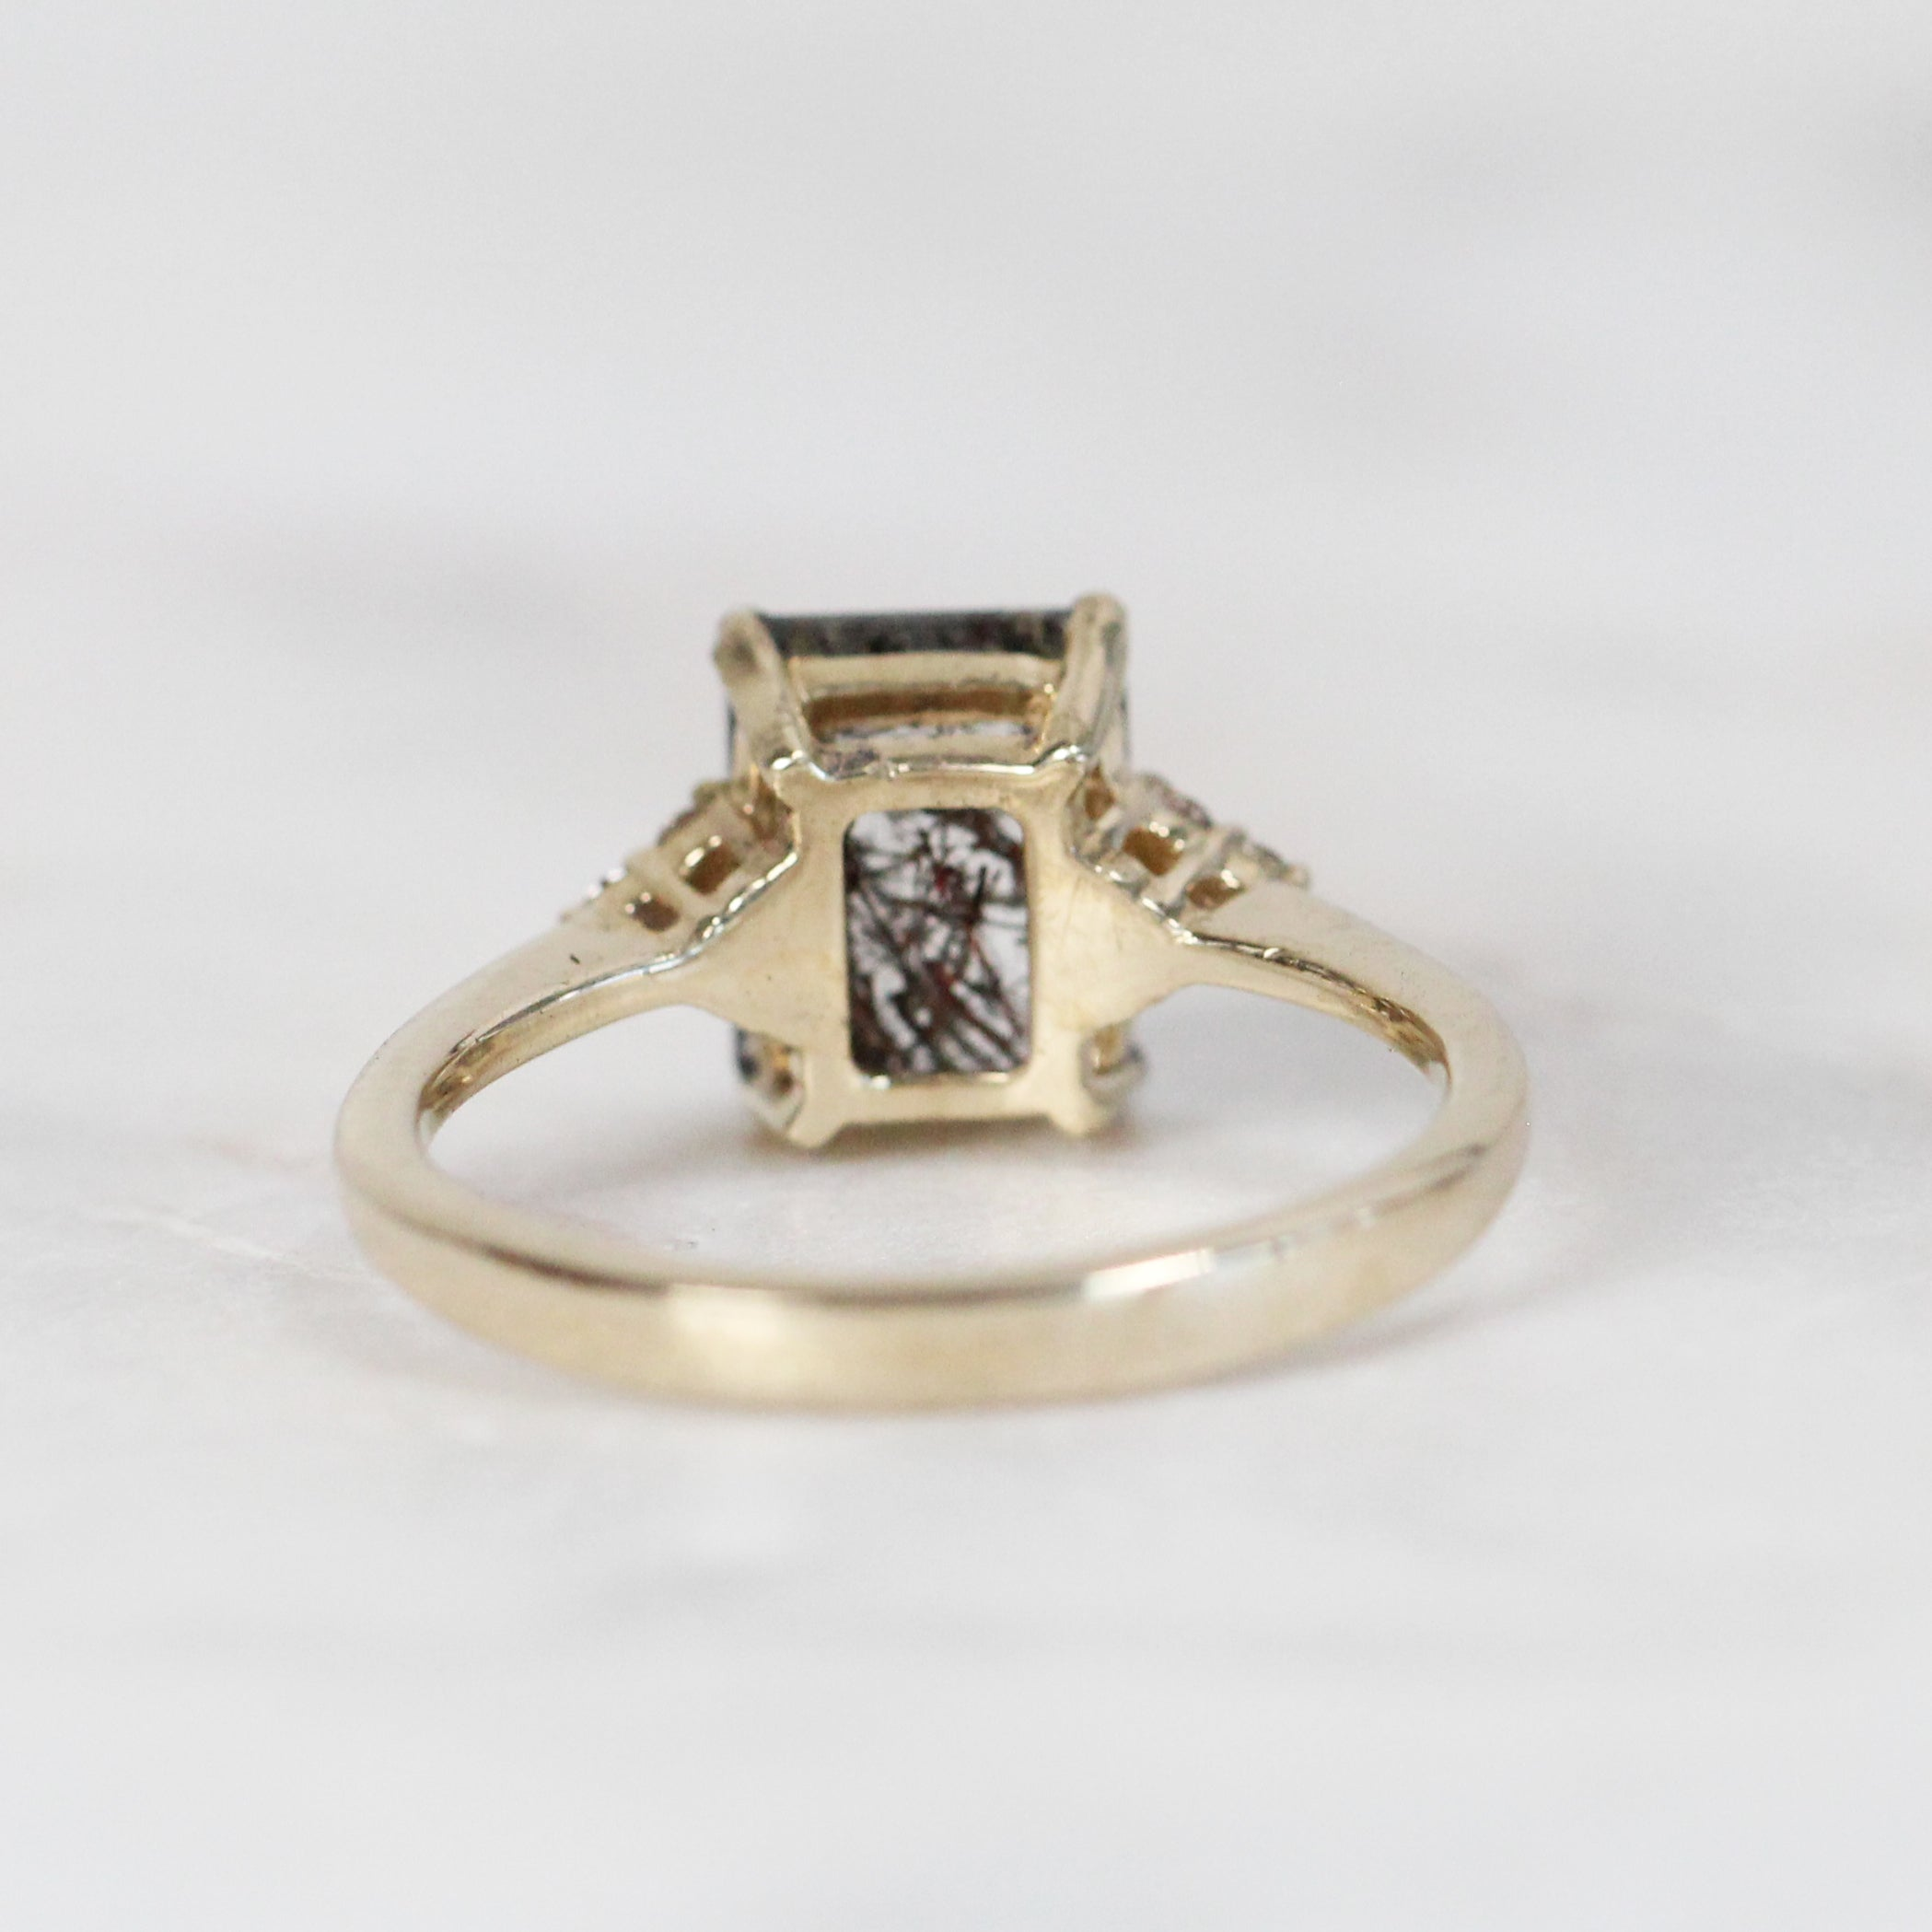 Imogene Ring with Tourmalinated Quartz in 10k Yellow Gold Setting - Ready to size and ship - Celestial Diamonds ® by Midwinter Co.